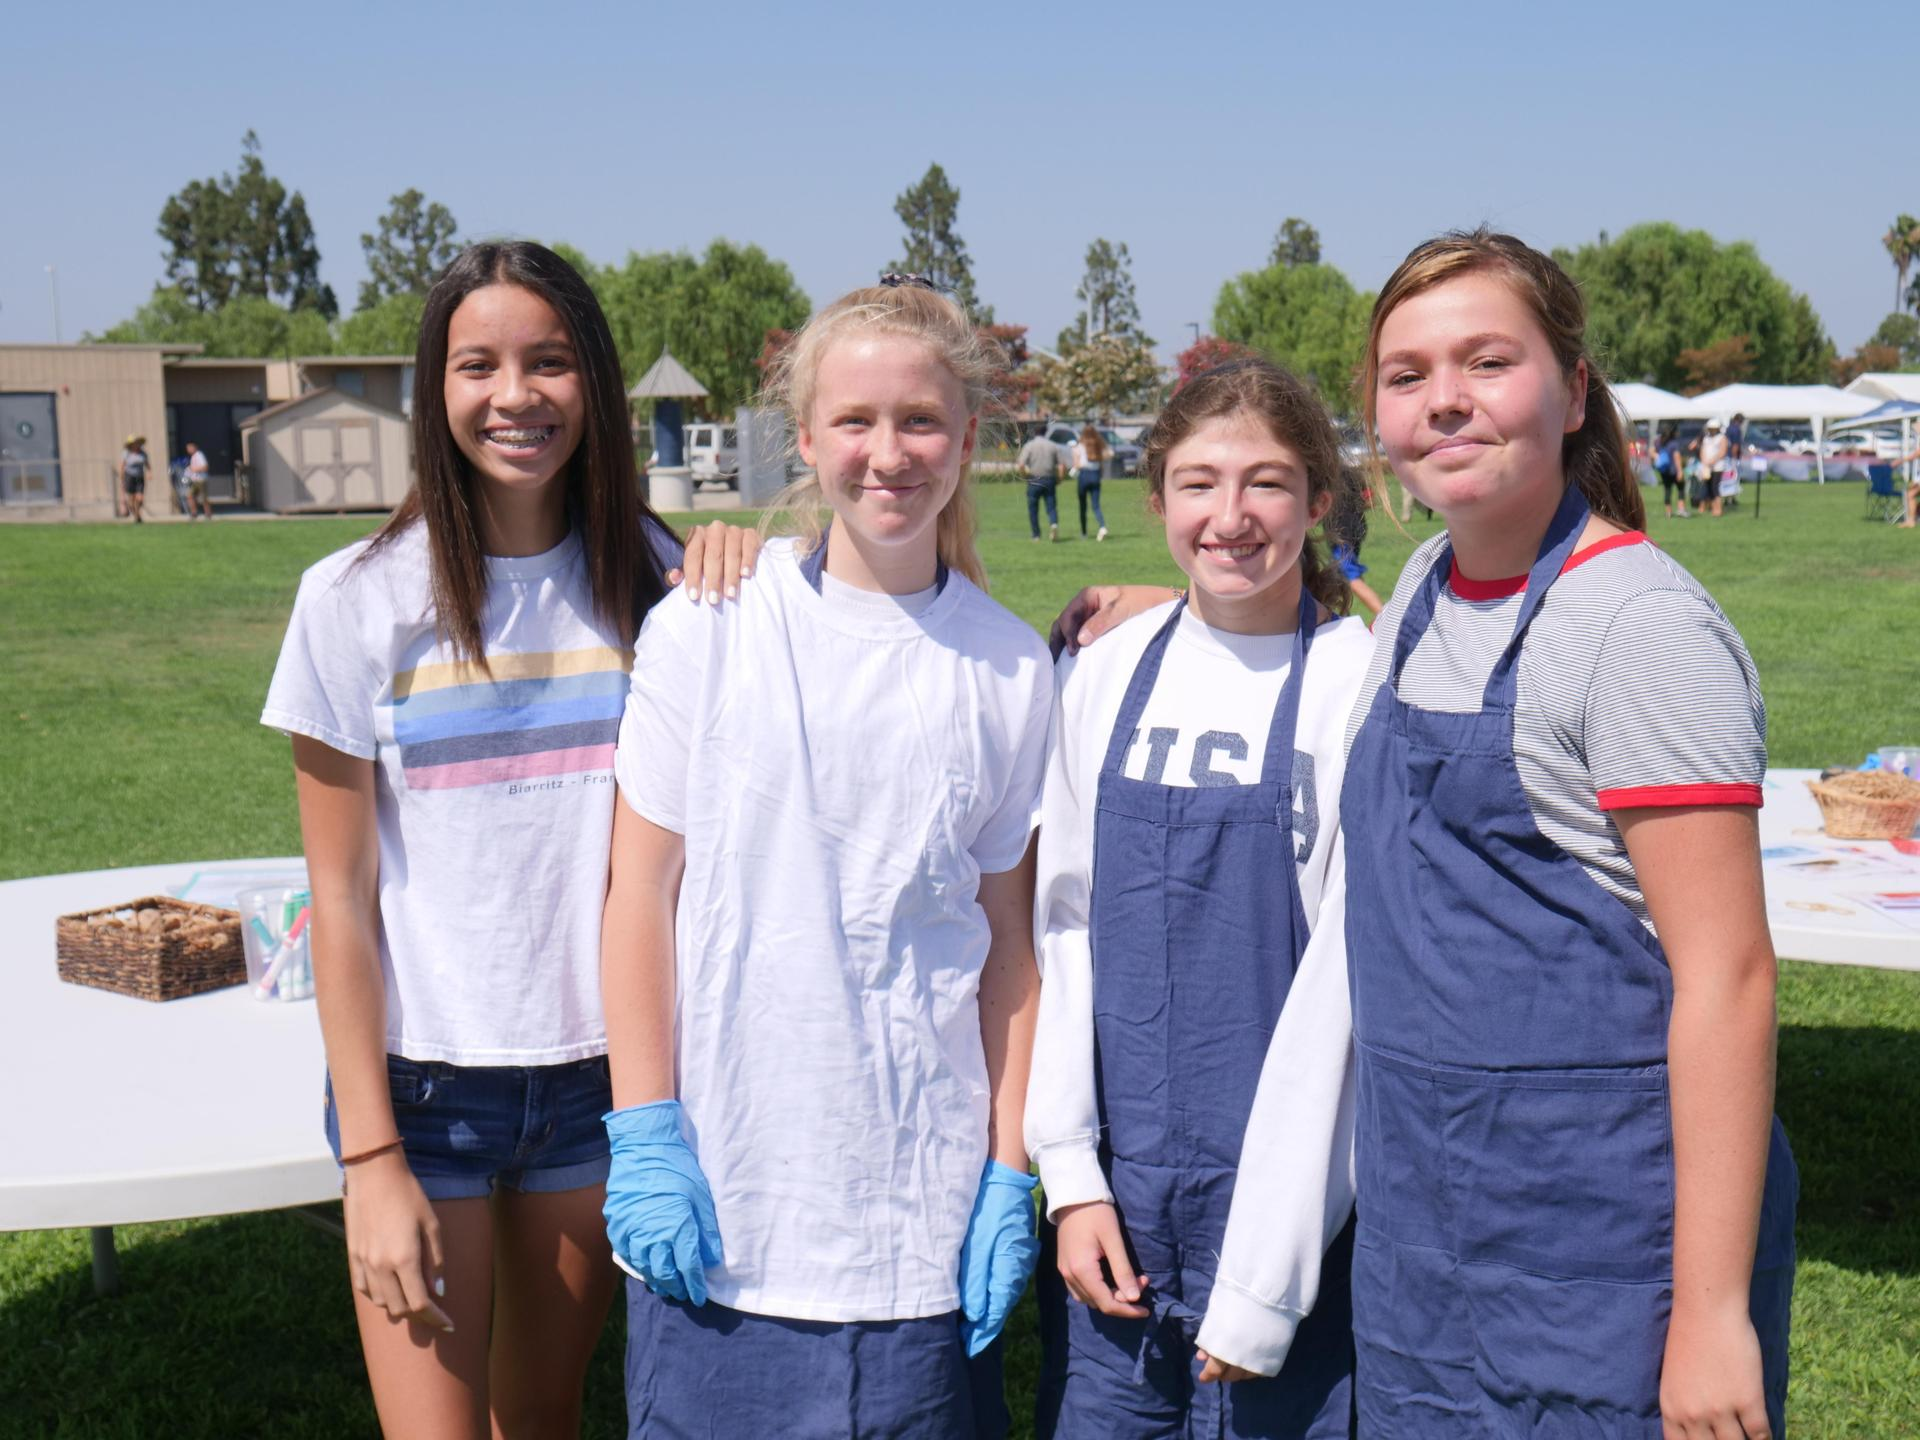 Student volunteers at the Husky Pride Picnic